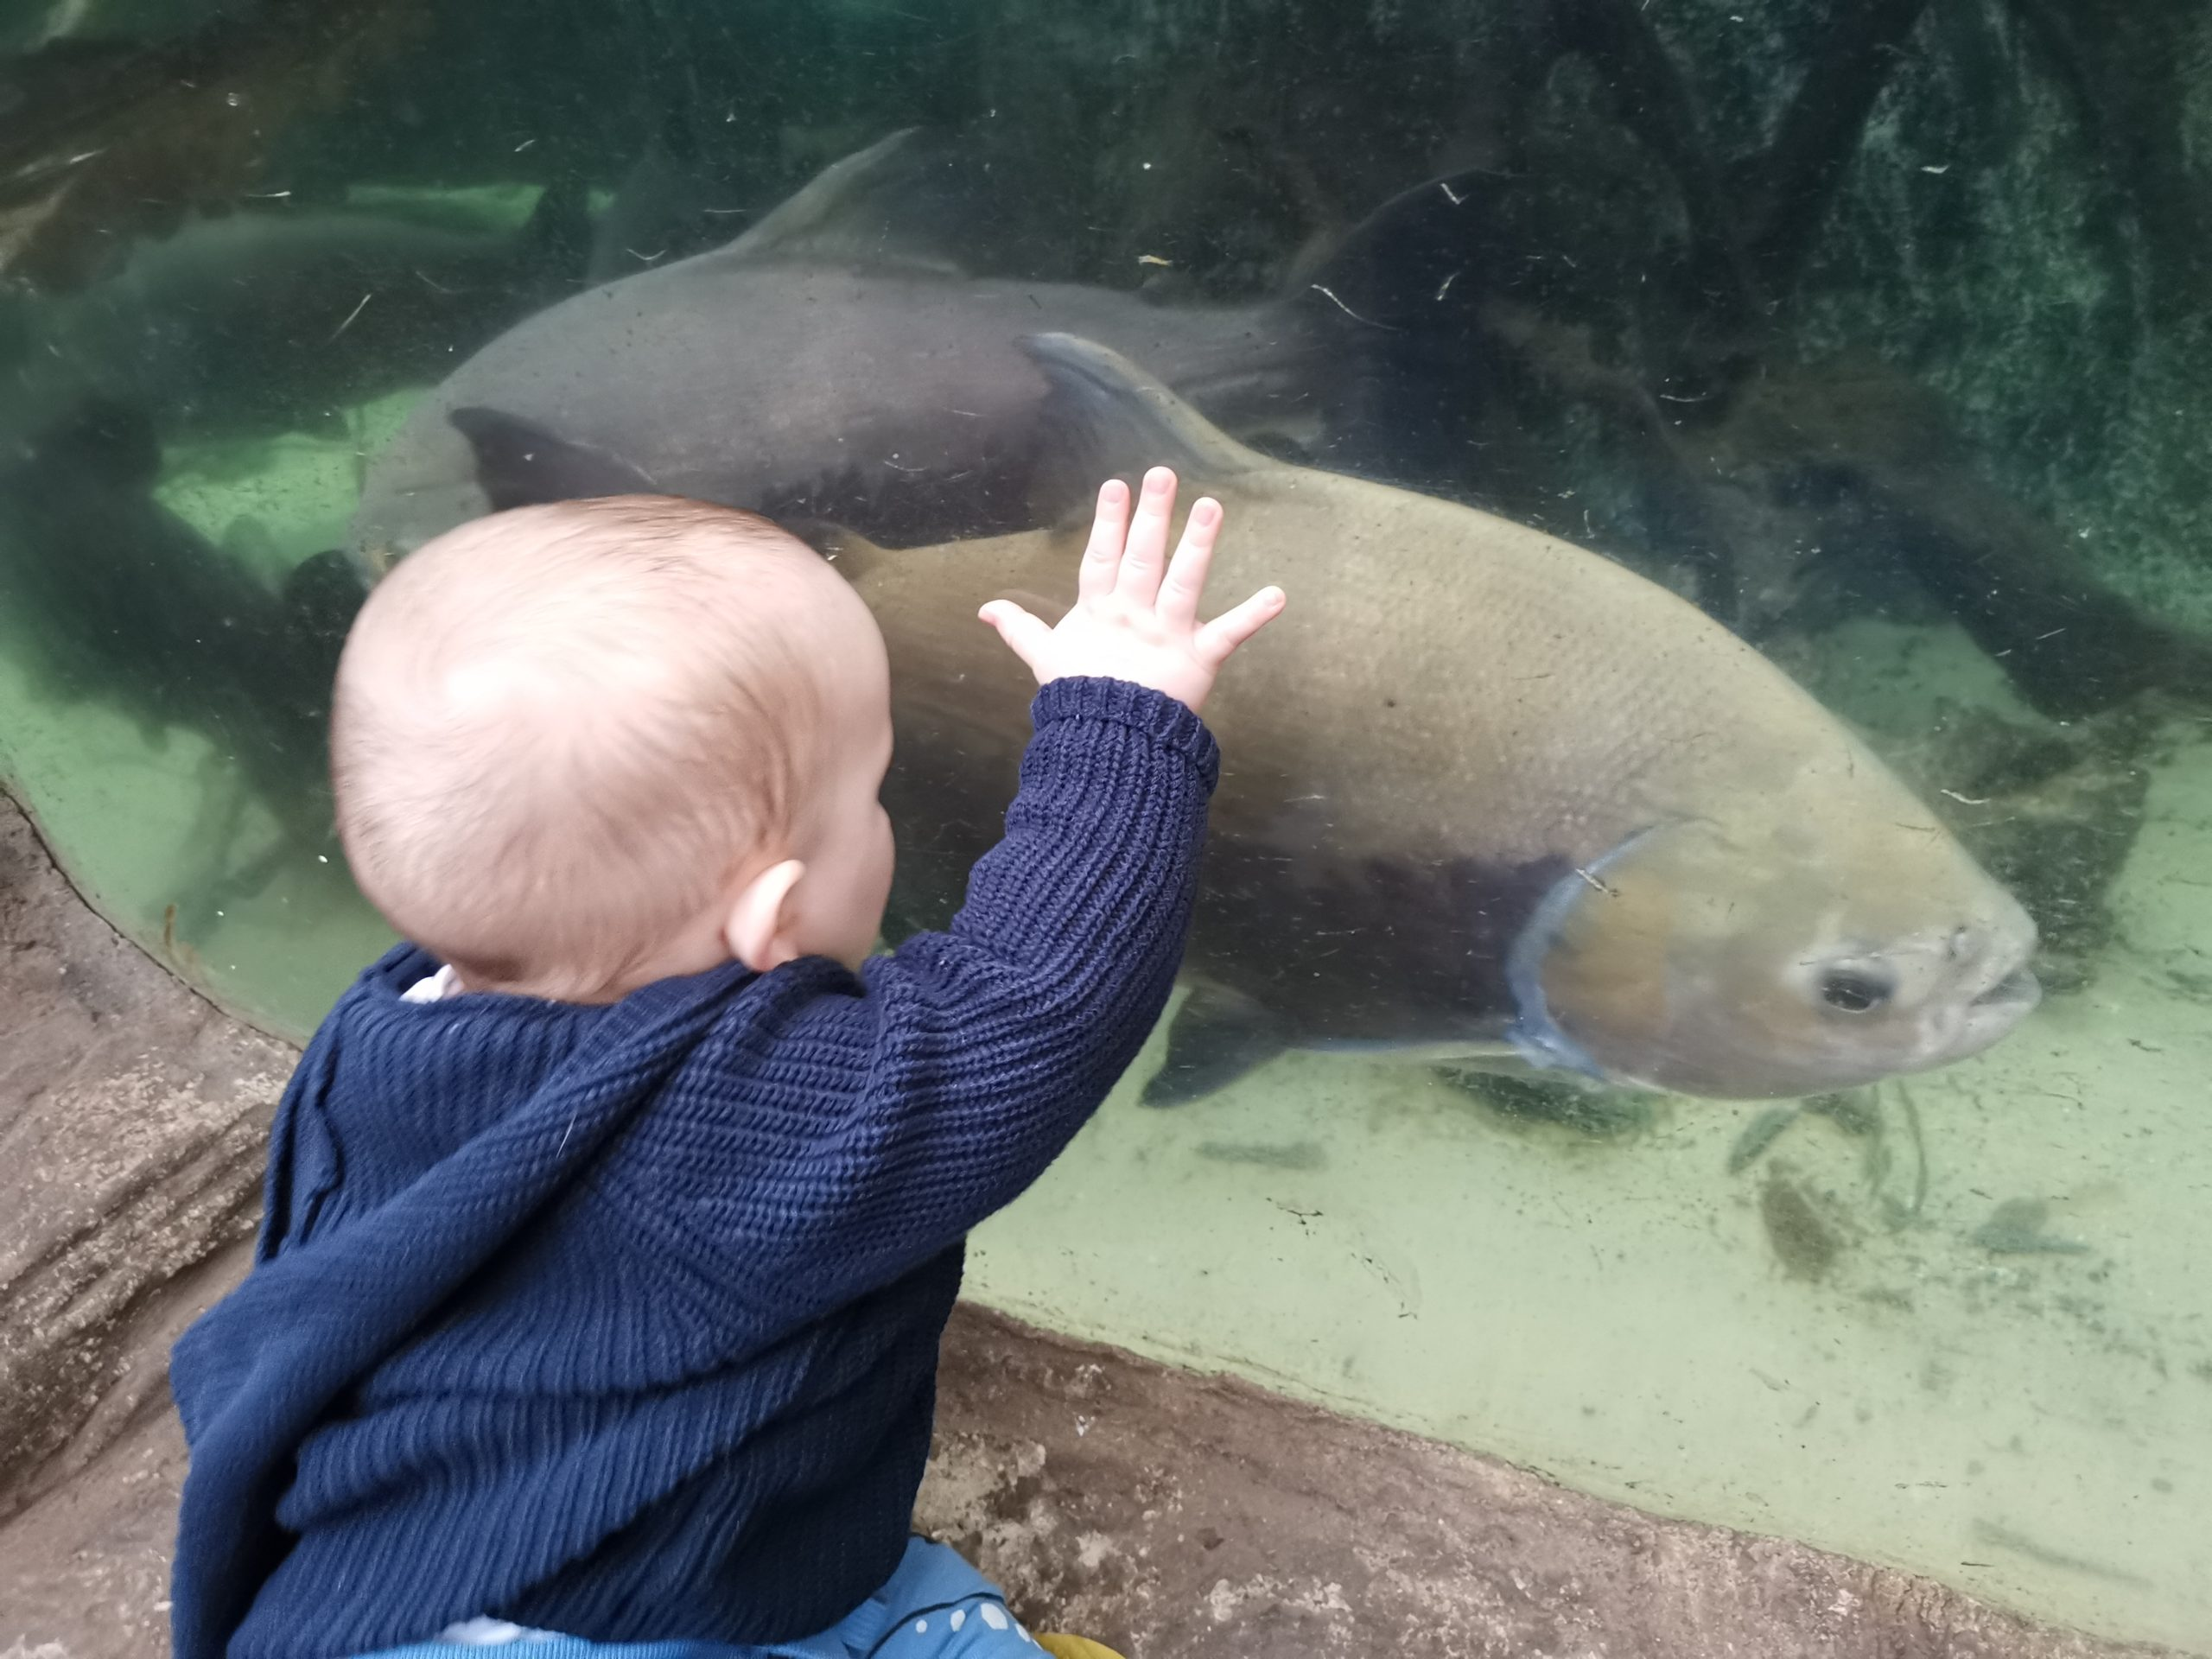 Baby with hand on fish tank as a large amazon river fish swims past